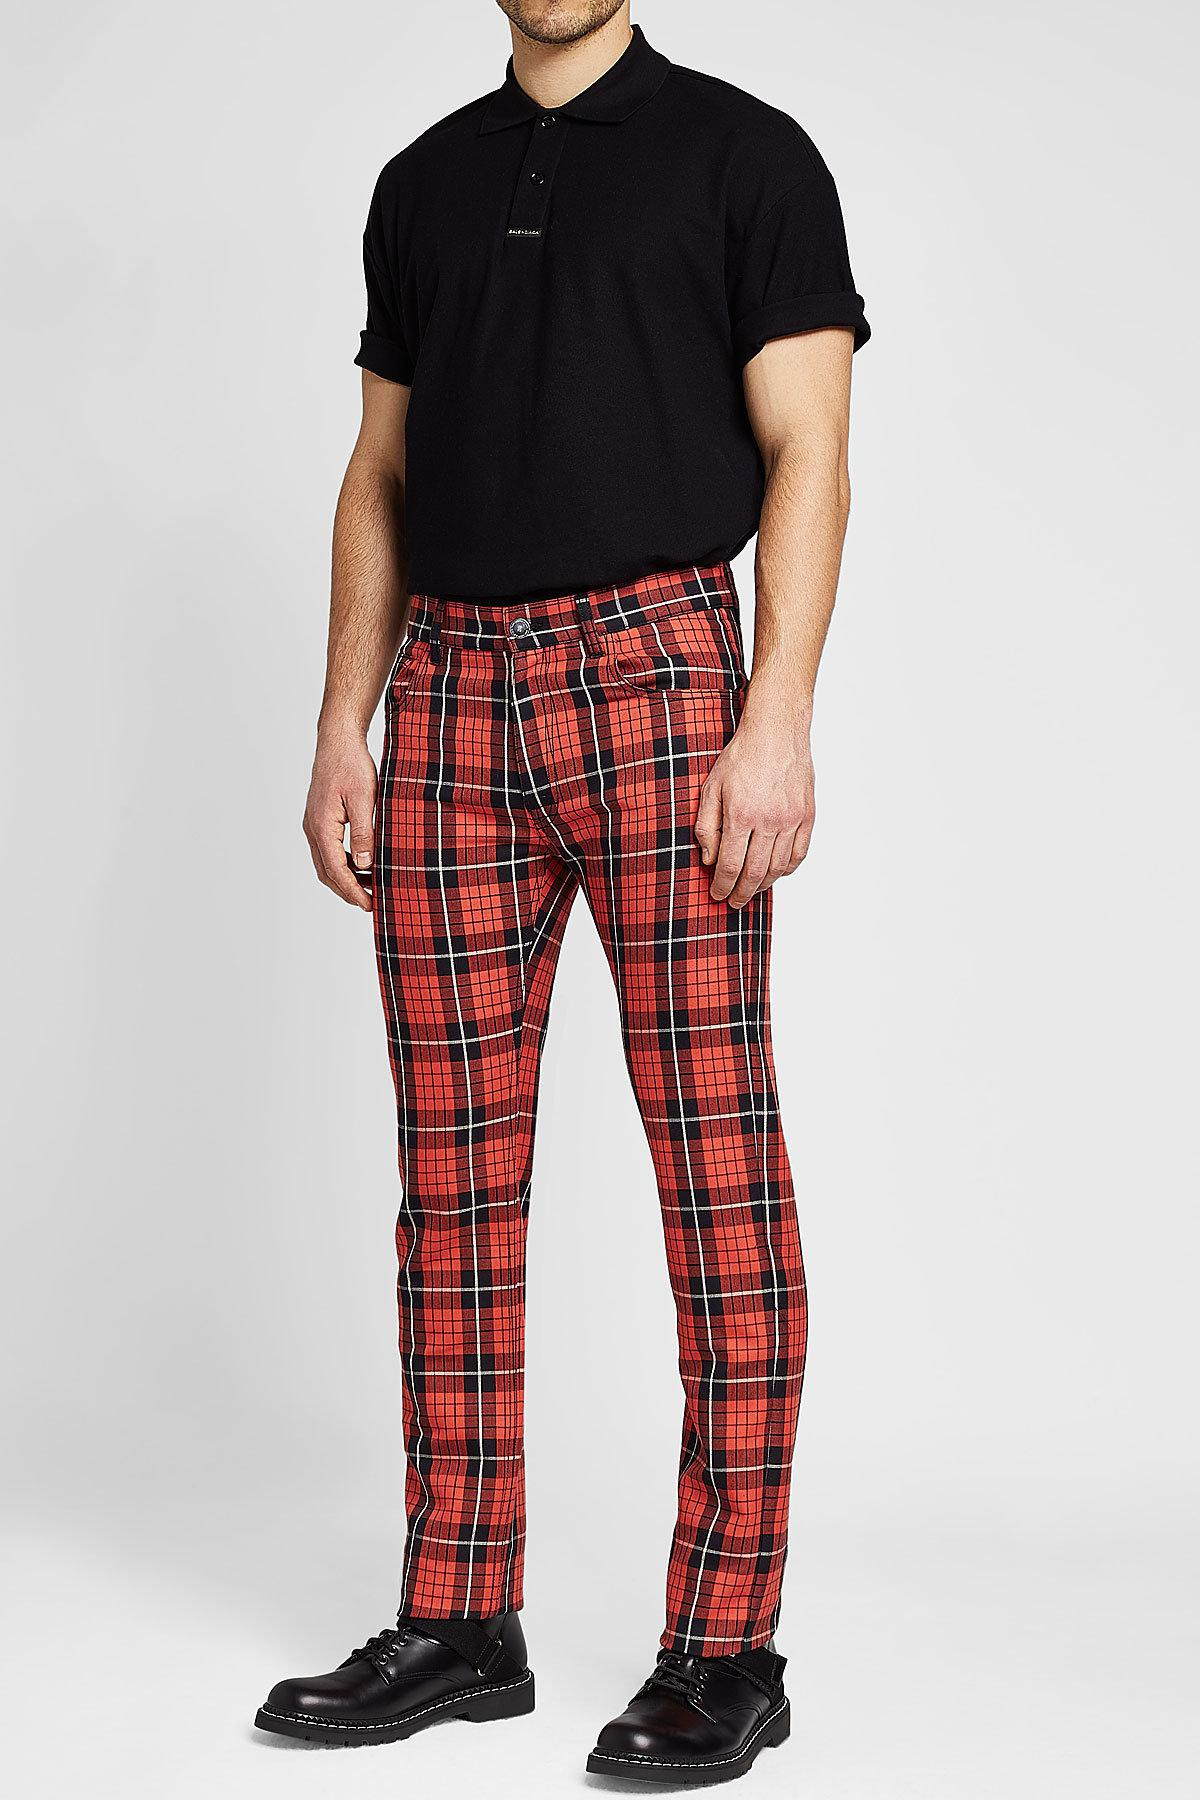 c3b27752 Raf Simons Plaid Jeans in Red for Men - Lyst